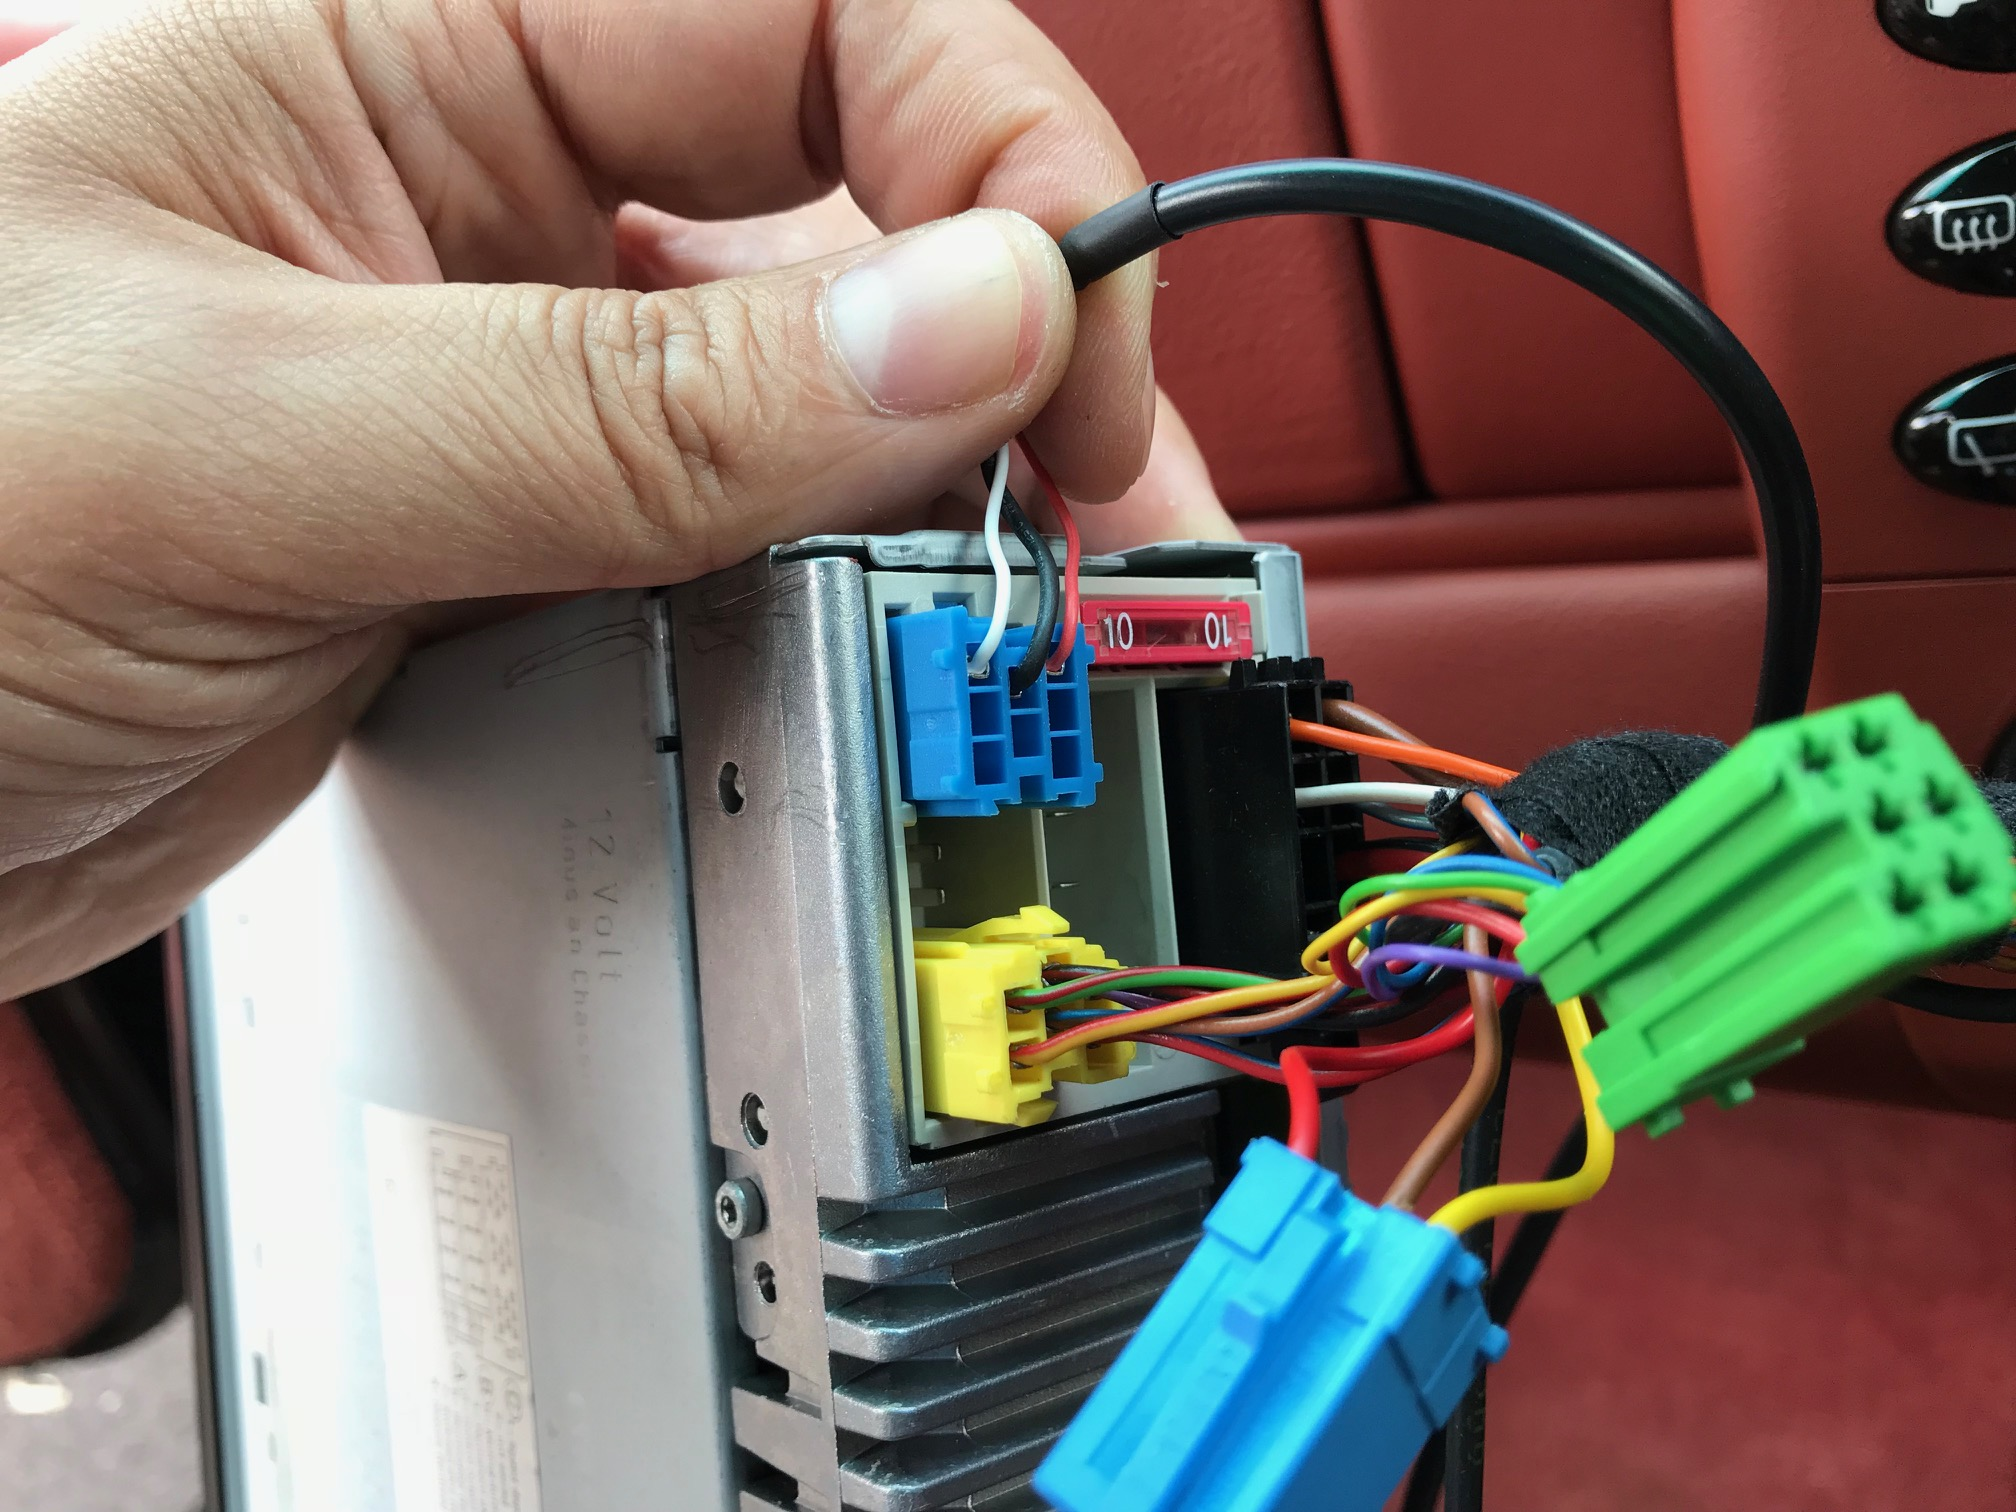 Car Radio Stereo 35mm Jack Aux In Input Lead Porsche Cr 22 1 Wiring Note Must Be Activated From Stereoif Fitted With Cd Changer This Unplugged Some Casesfor To Work